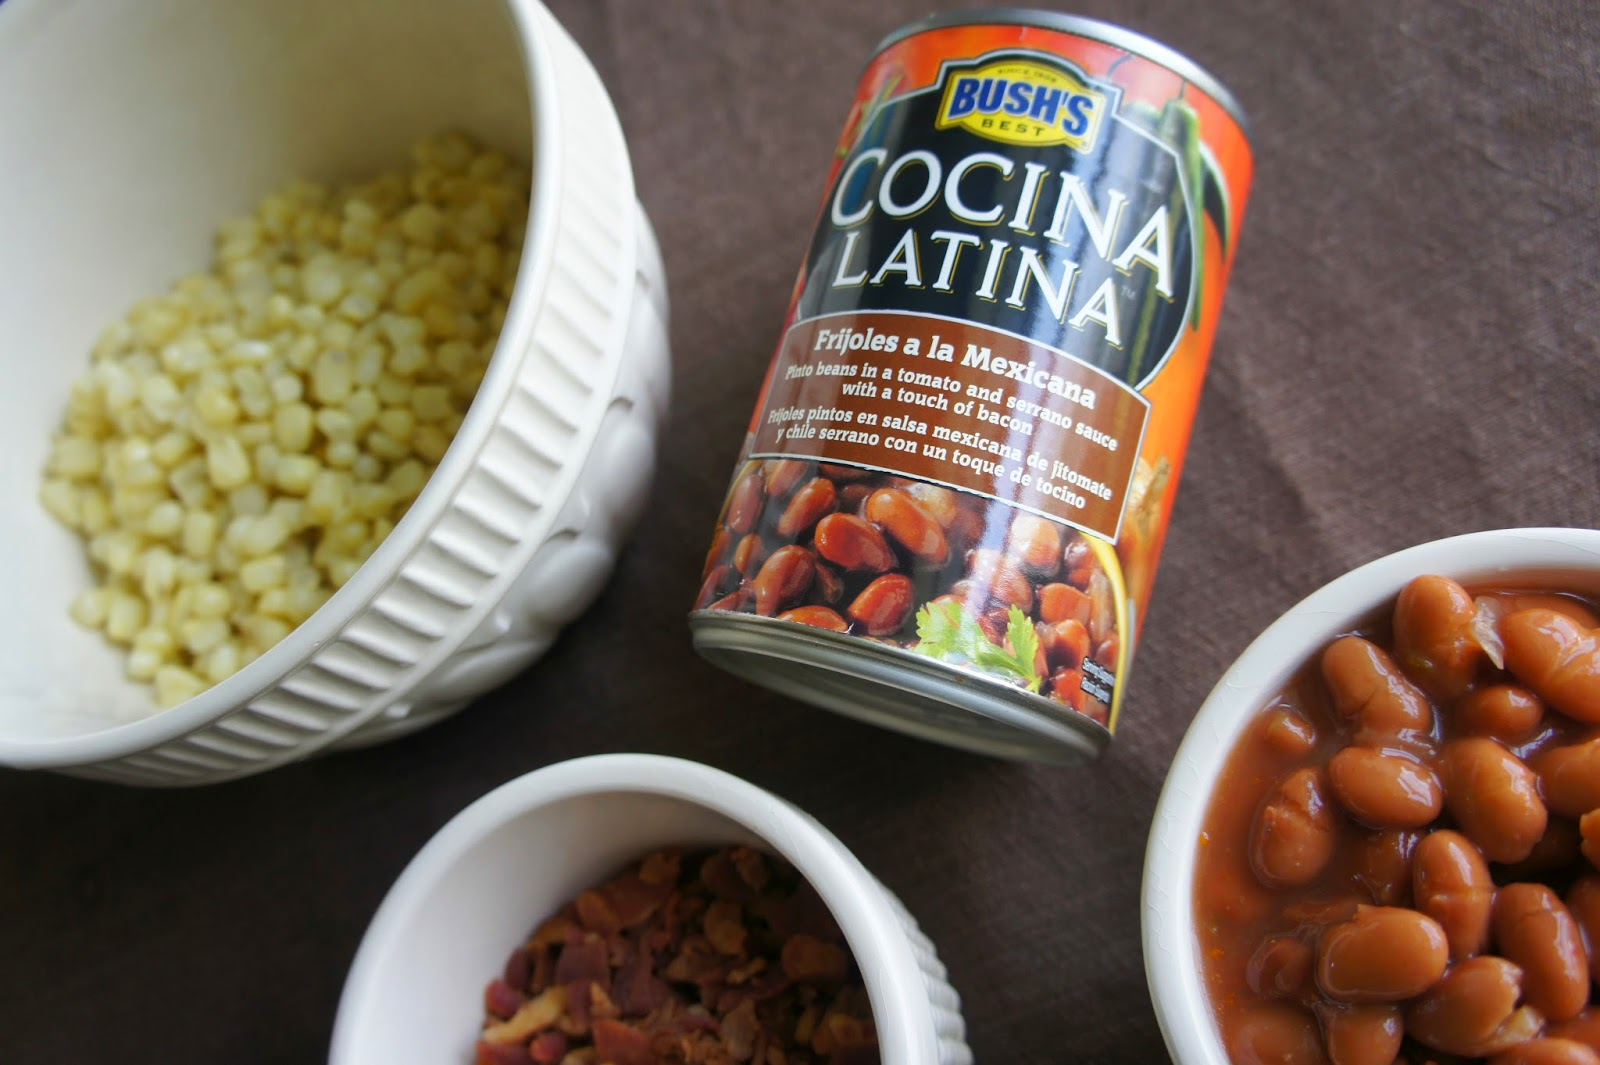 Pinto Bean Salad using Bush's Cocina Latina {plus 3 more bean appetizer recipes}